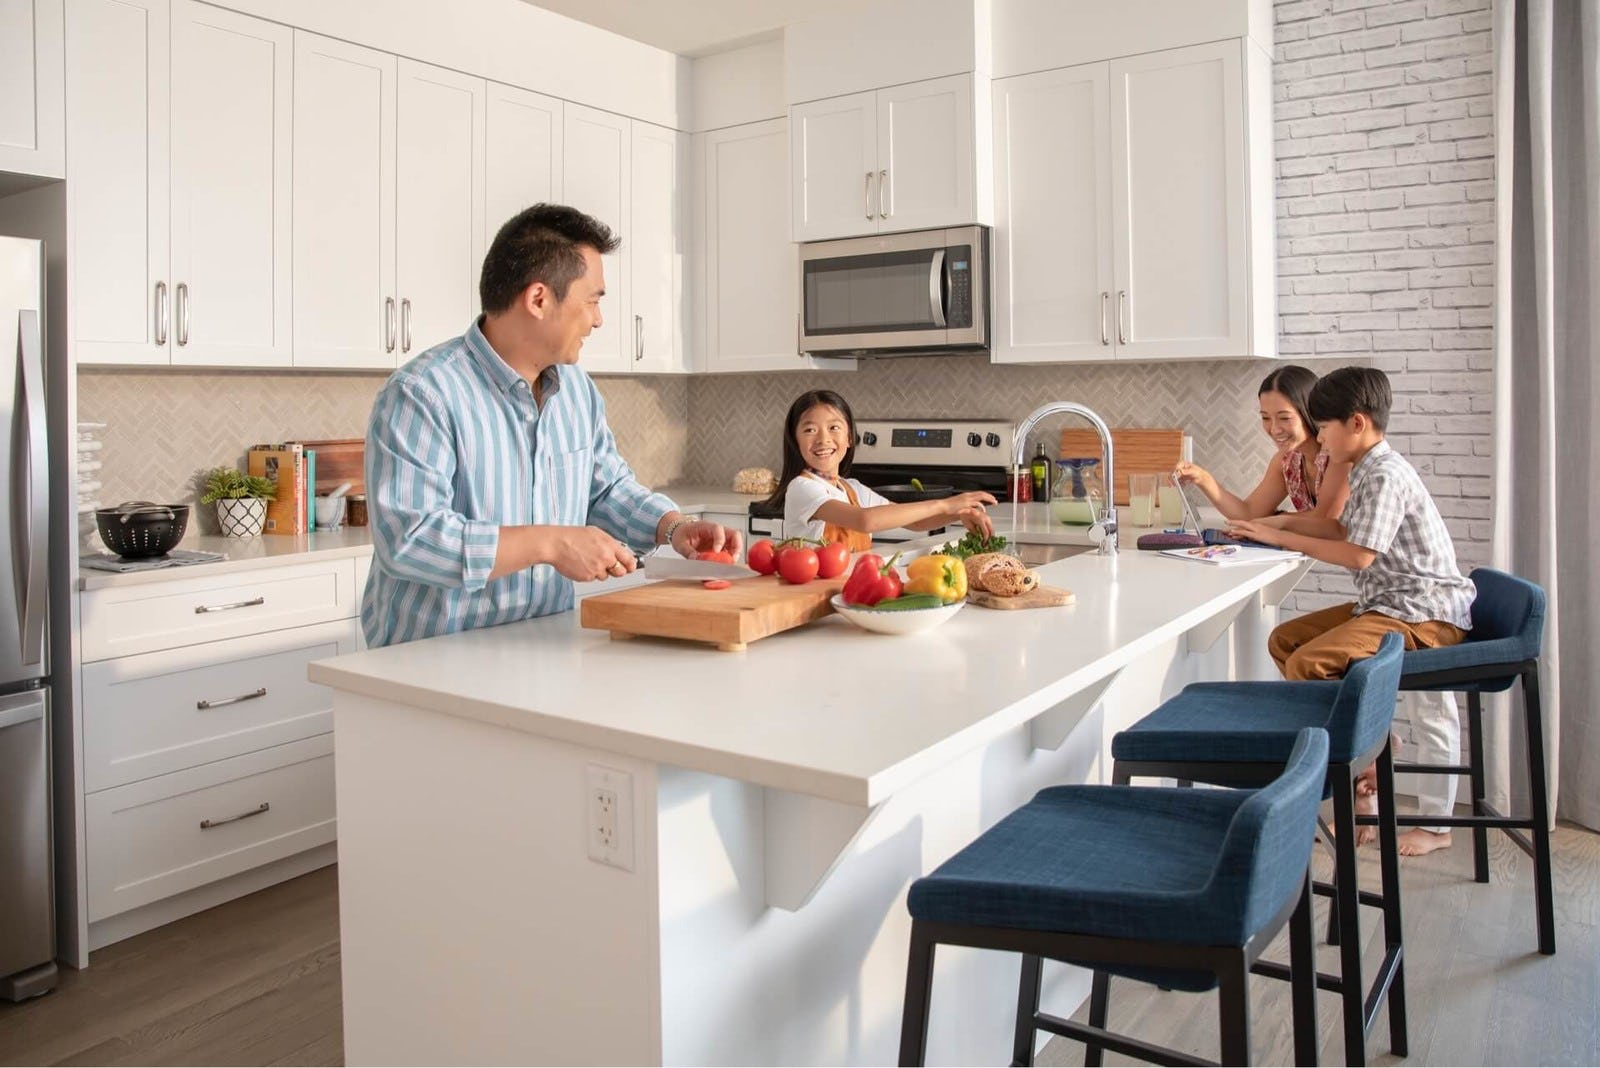 Family preparing food and laughing in kitchen